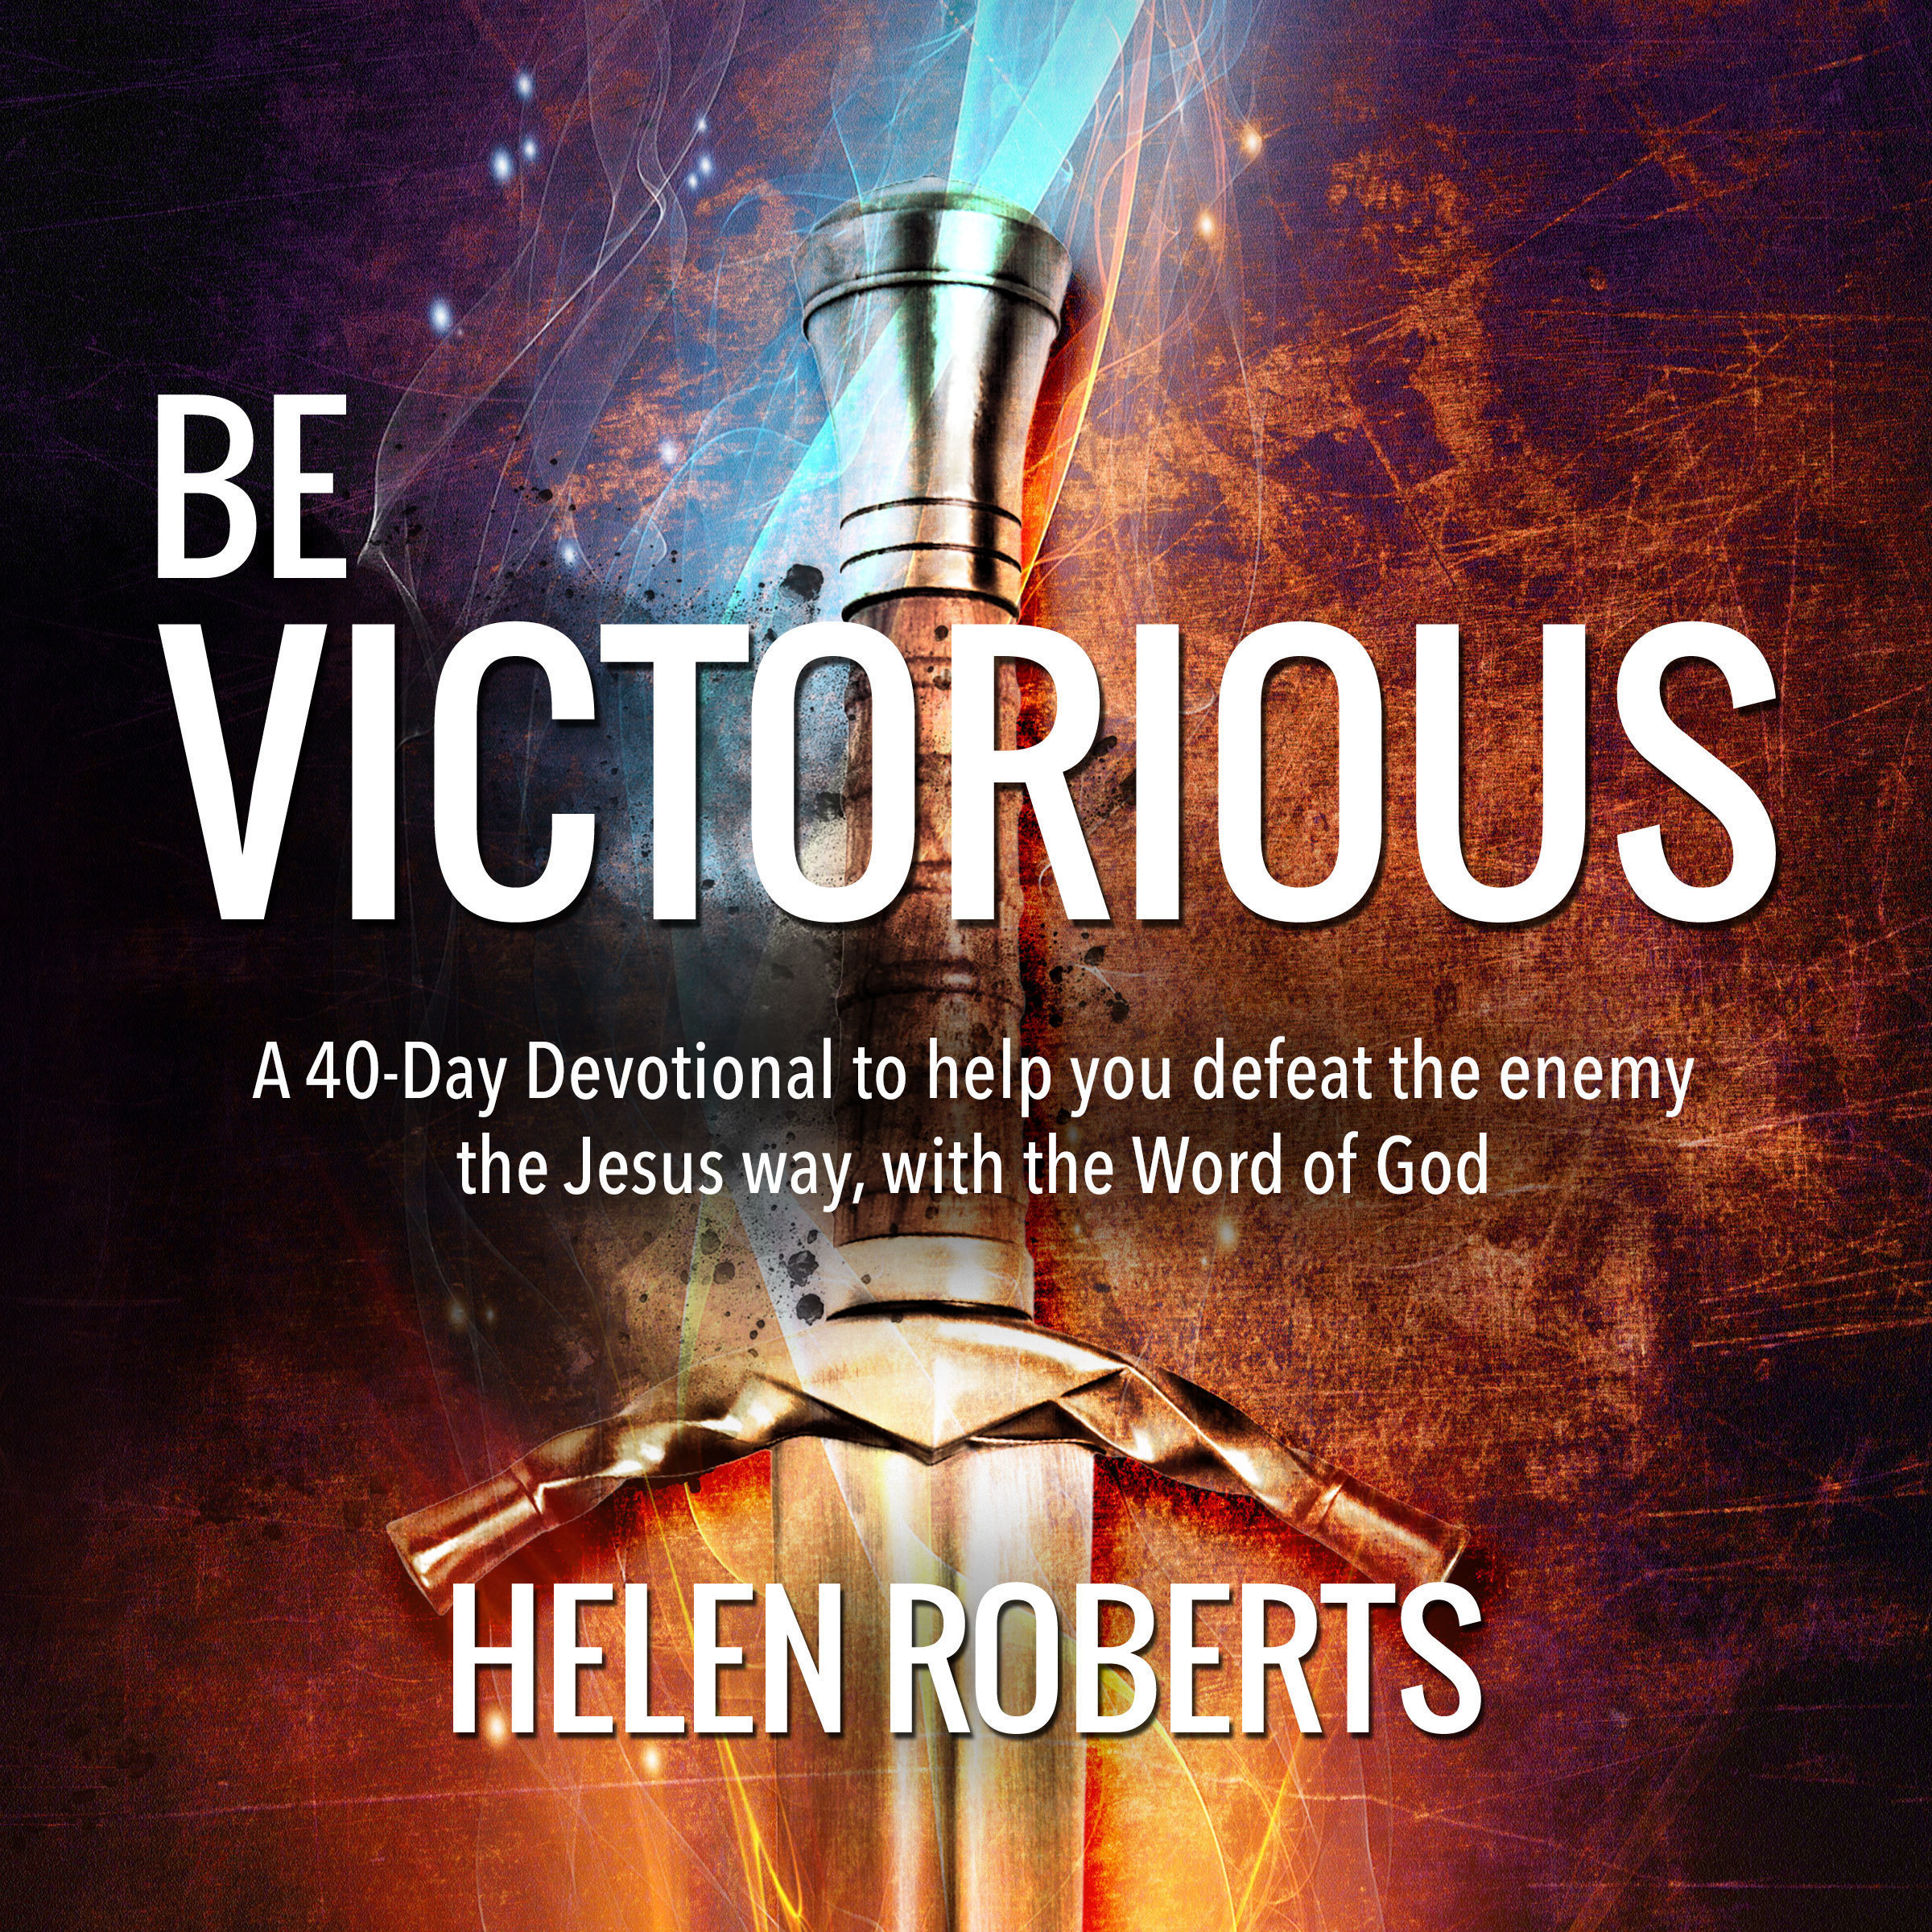 Printable Be Victorious – Helen Roberts: A 40-day devotional to help you defeat the enemy the Jesus' way, with our ultimate weapon: the Word of God Audiobook Cover Art